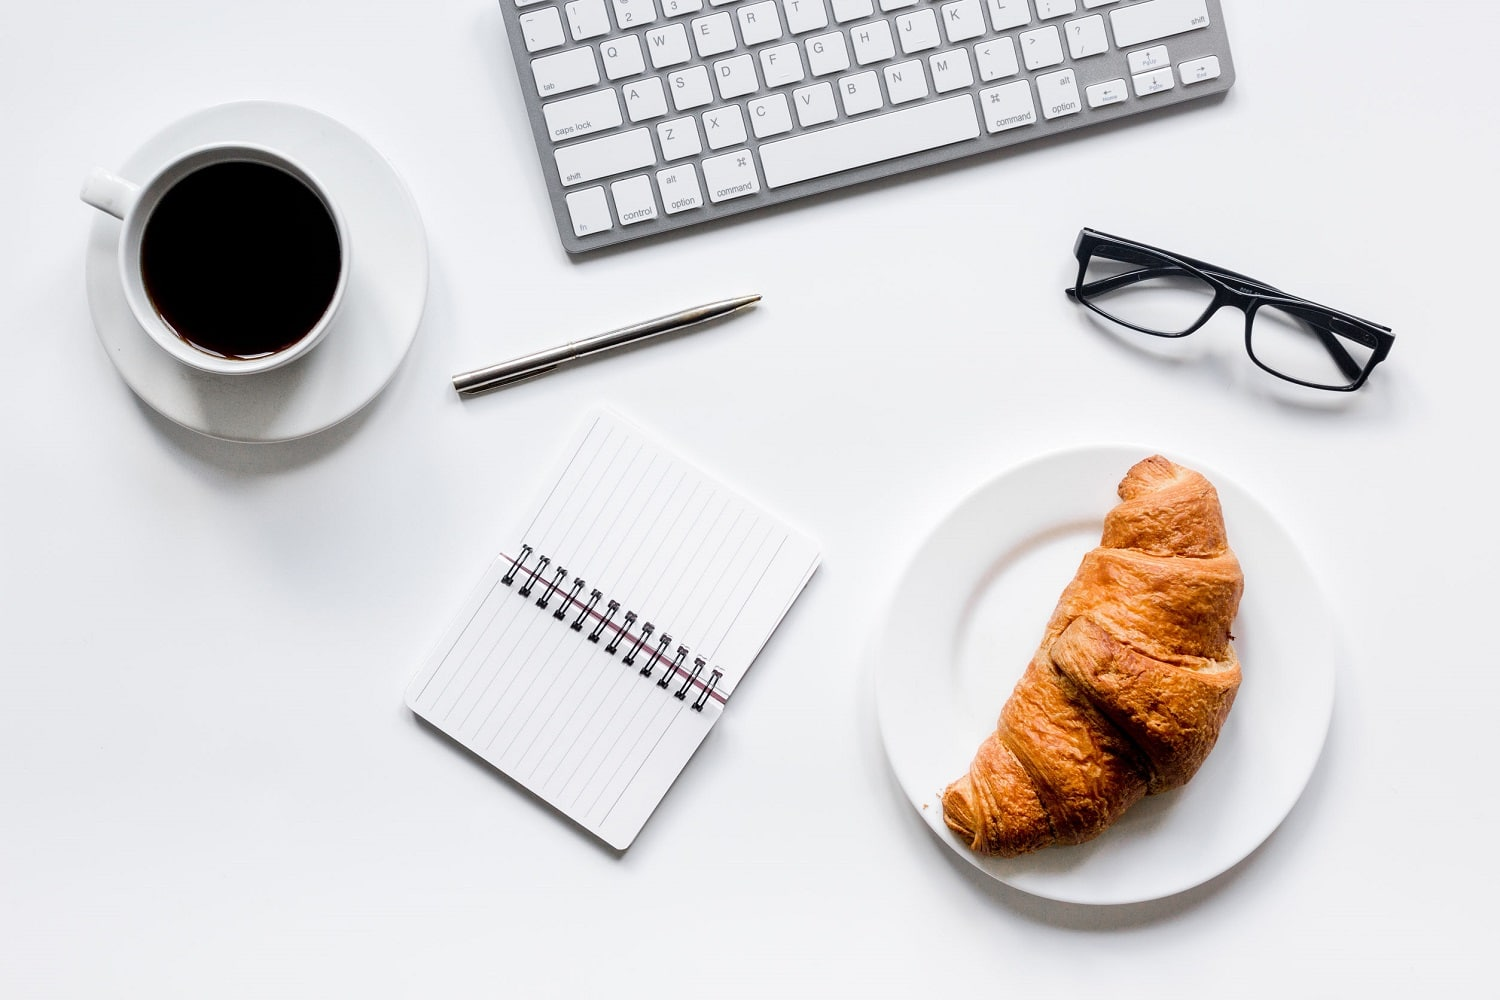 coffee and croissant for breakfast of businessman white office desk background top view space for text